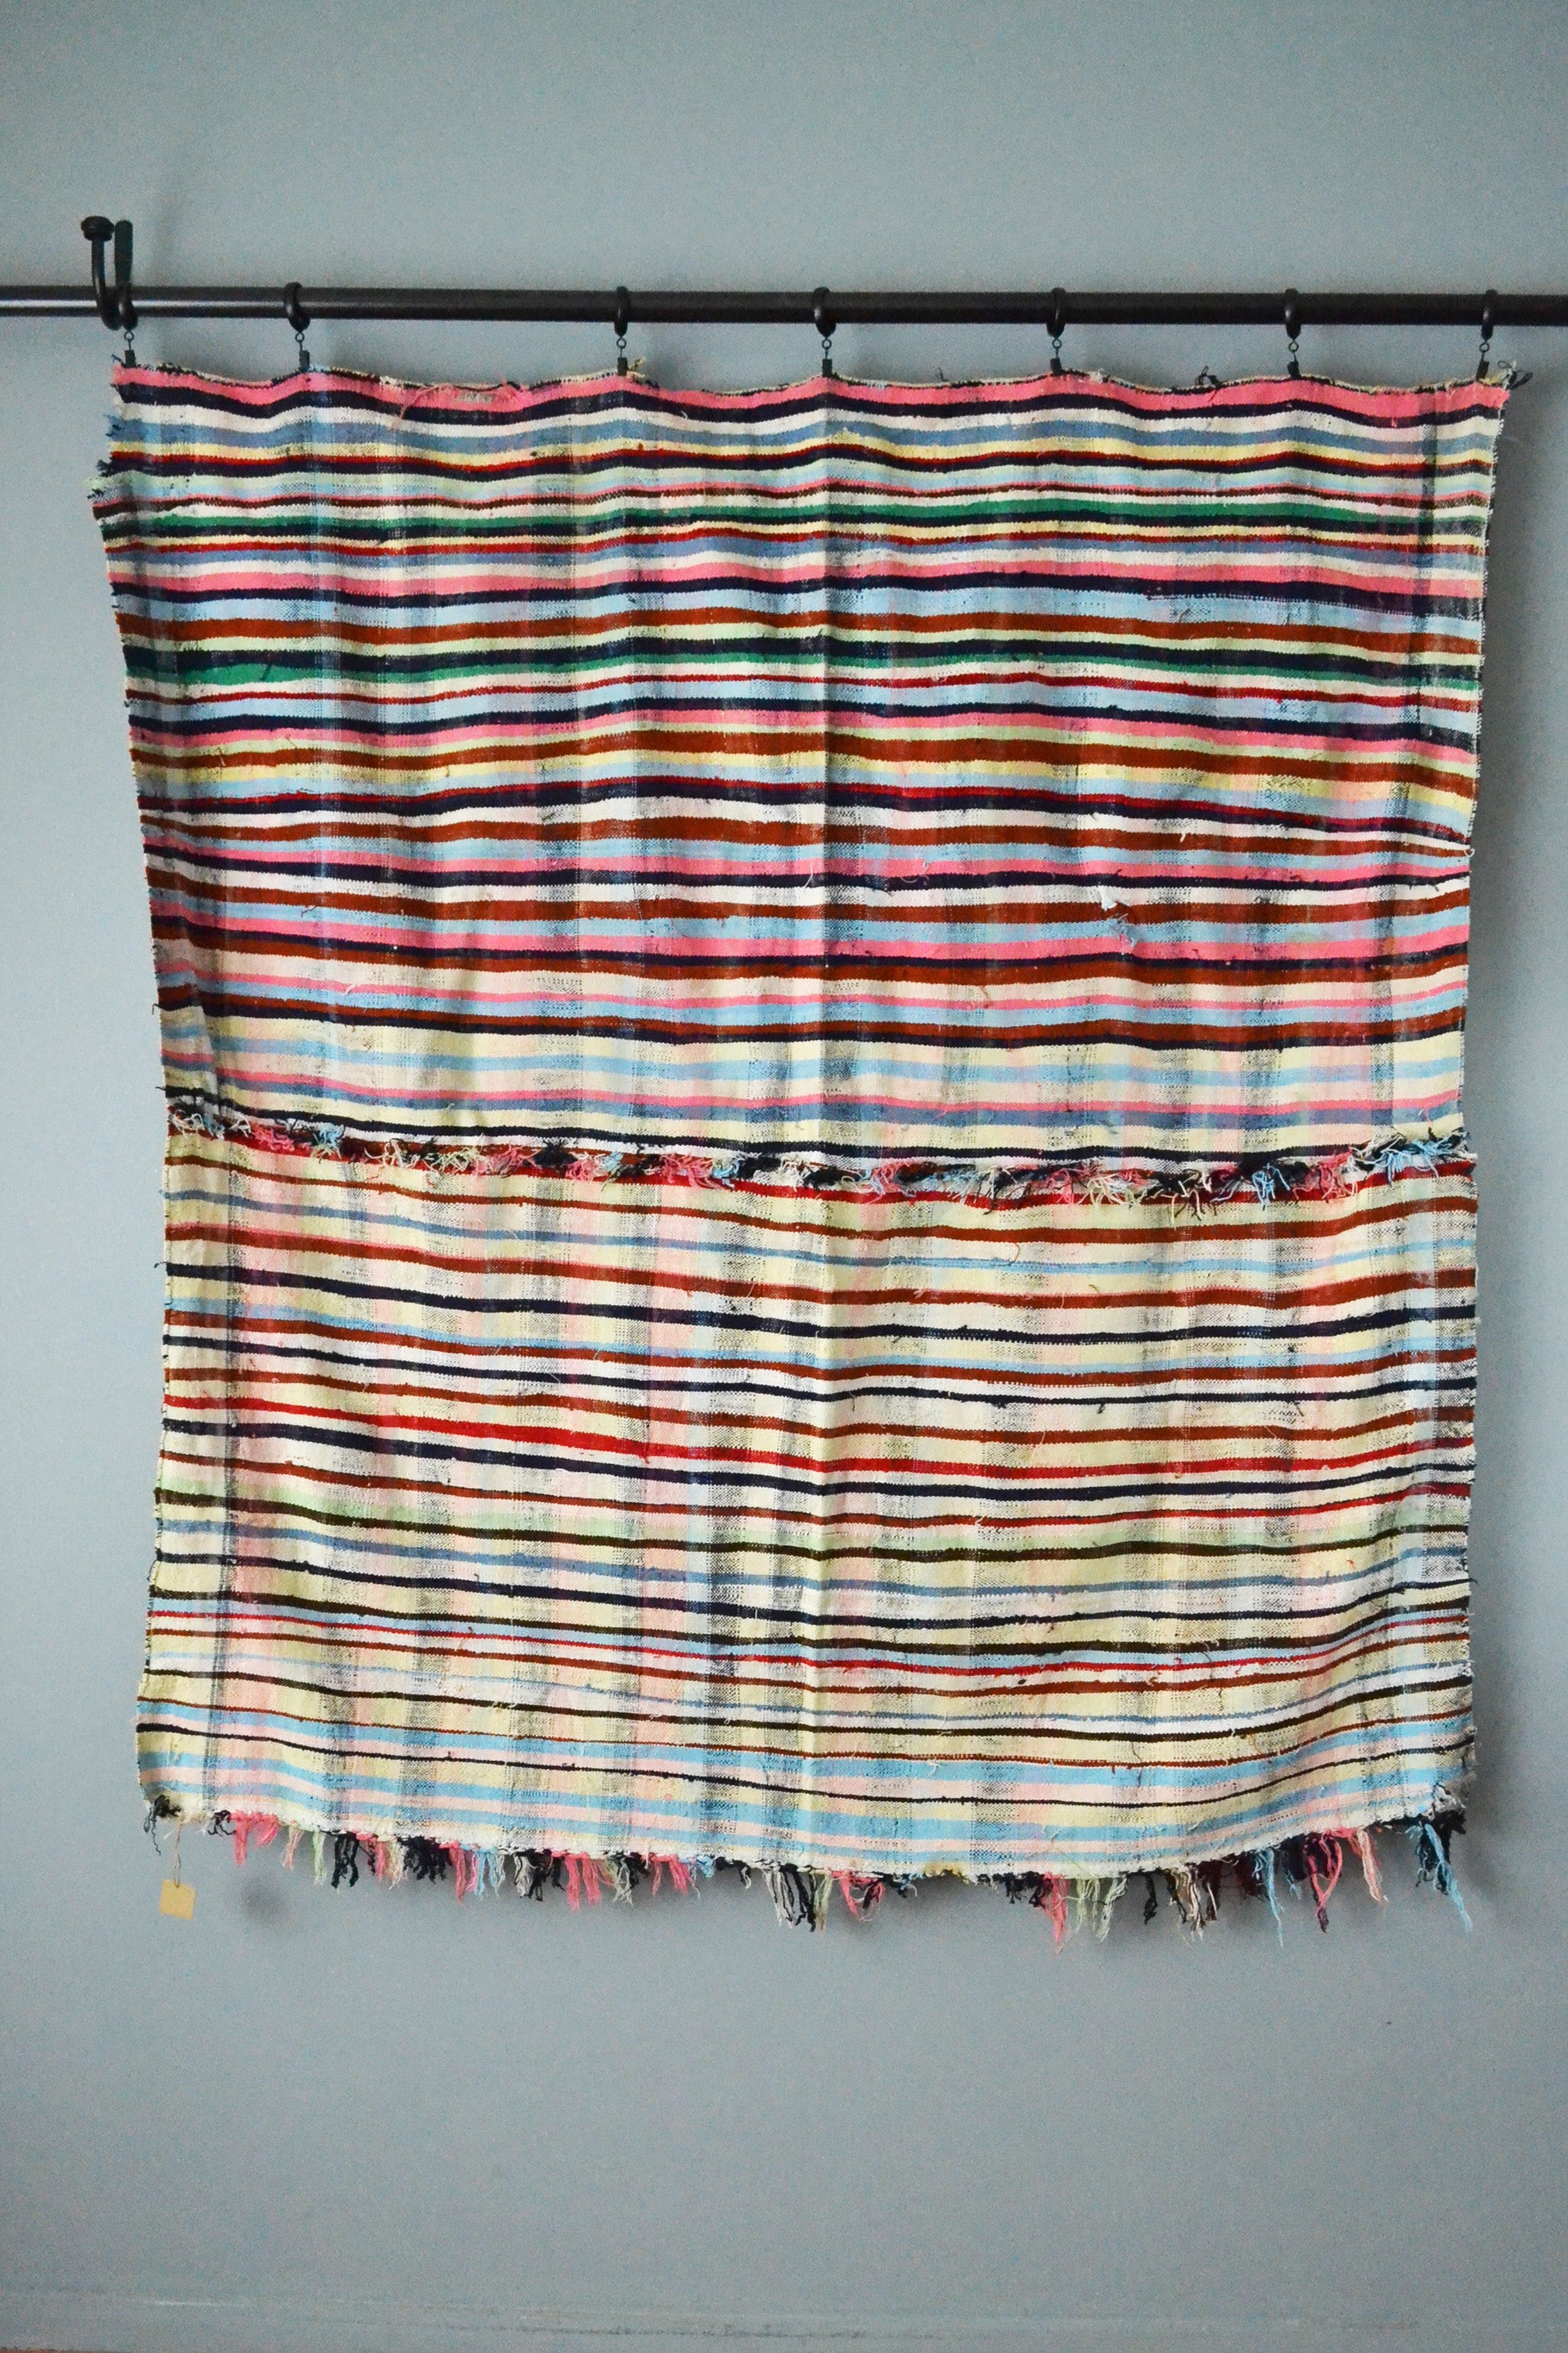 Vintage Striped Cotton Throw Blanket with Fringe by Yuba Mercantile